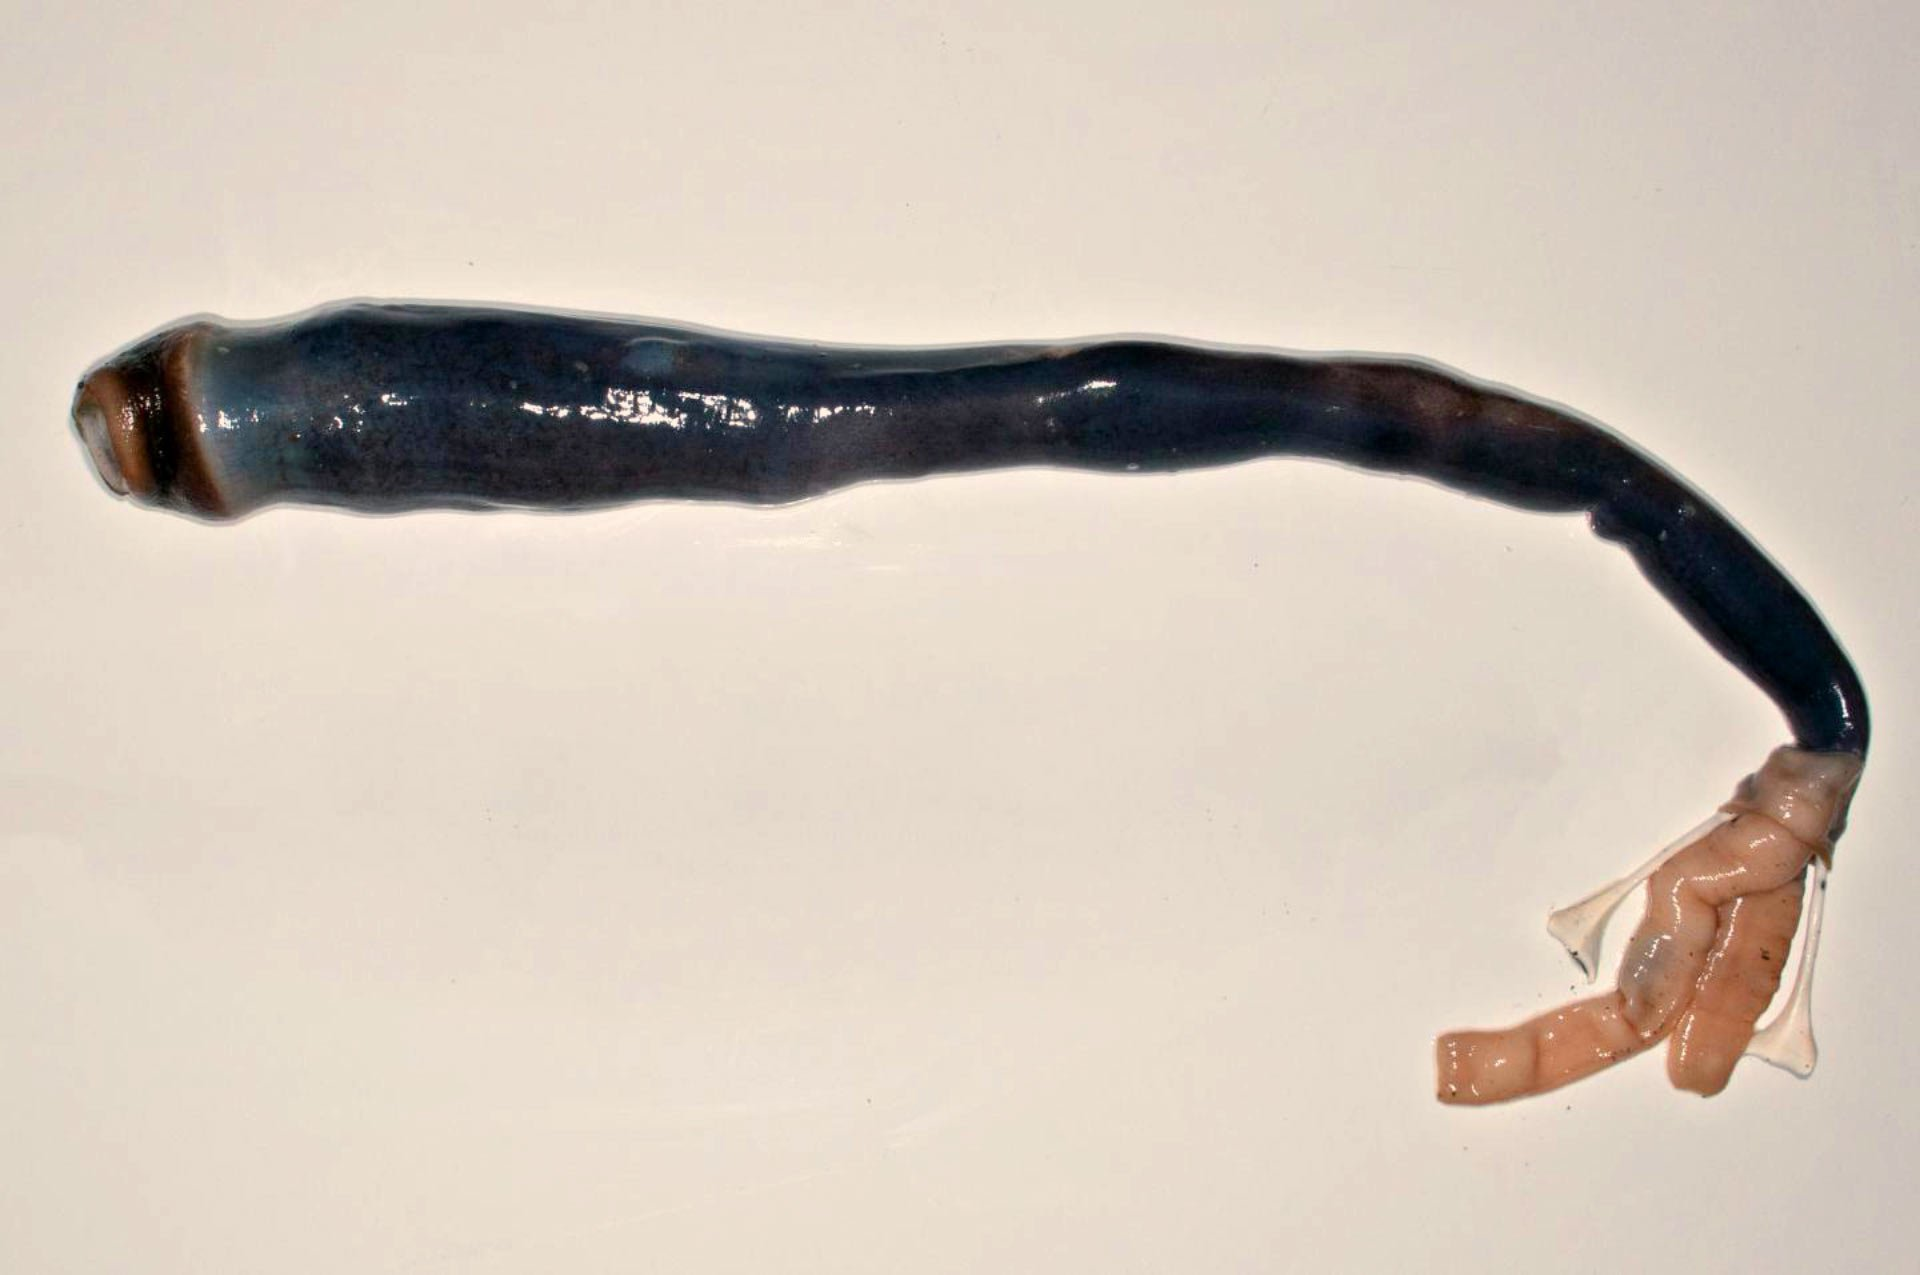 Giant five foot worm found for first time by scientists